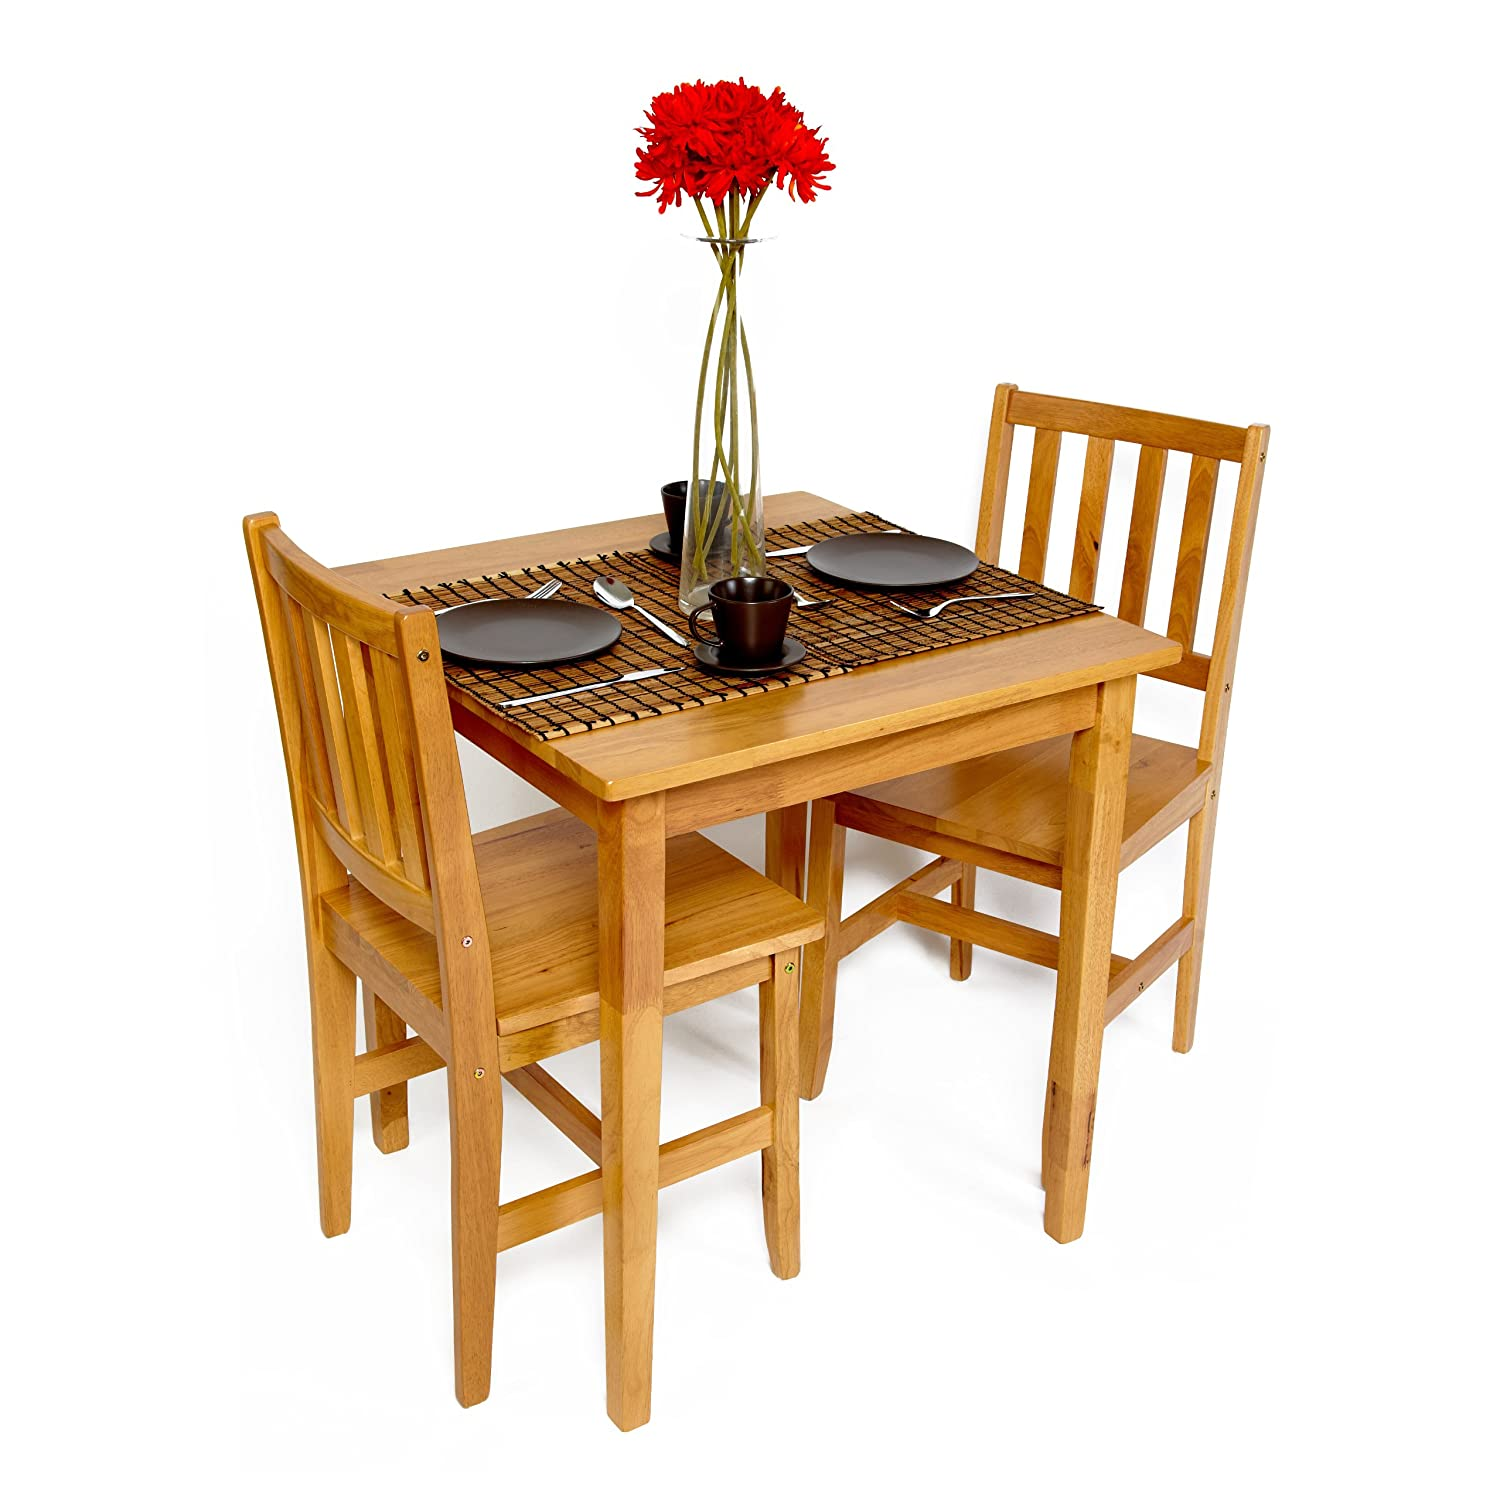 Table and chairs set dining bistro small cafe tables wood for Small kitchen table and chairs